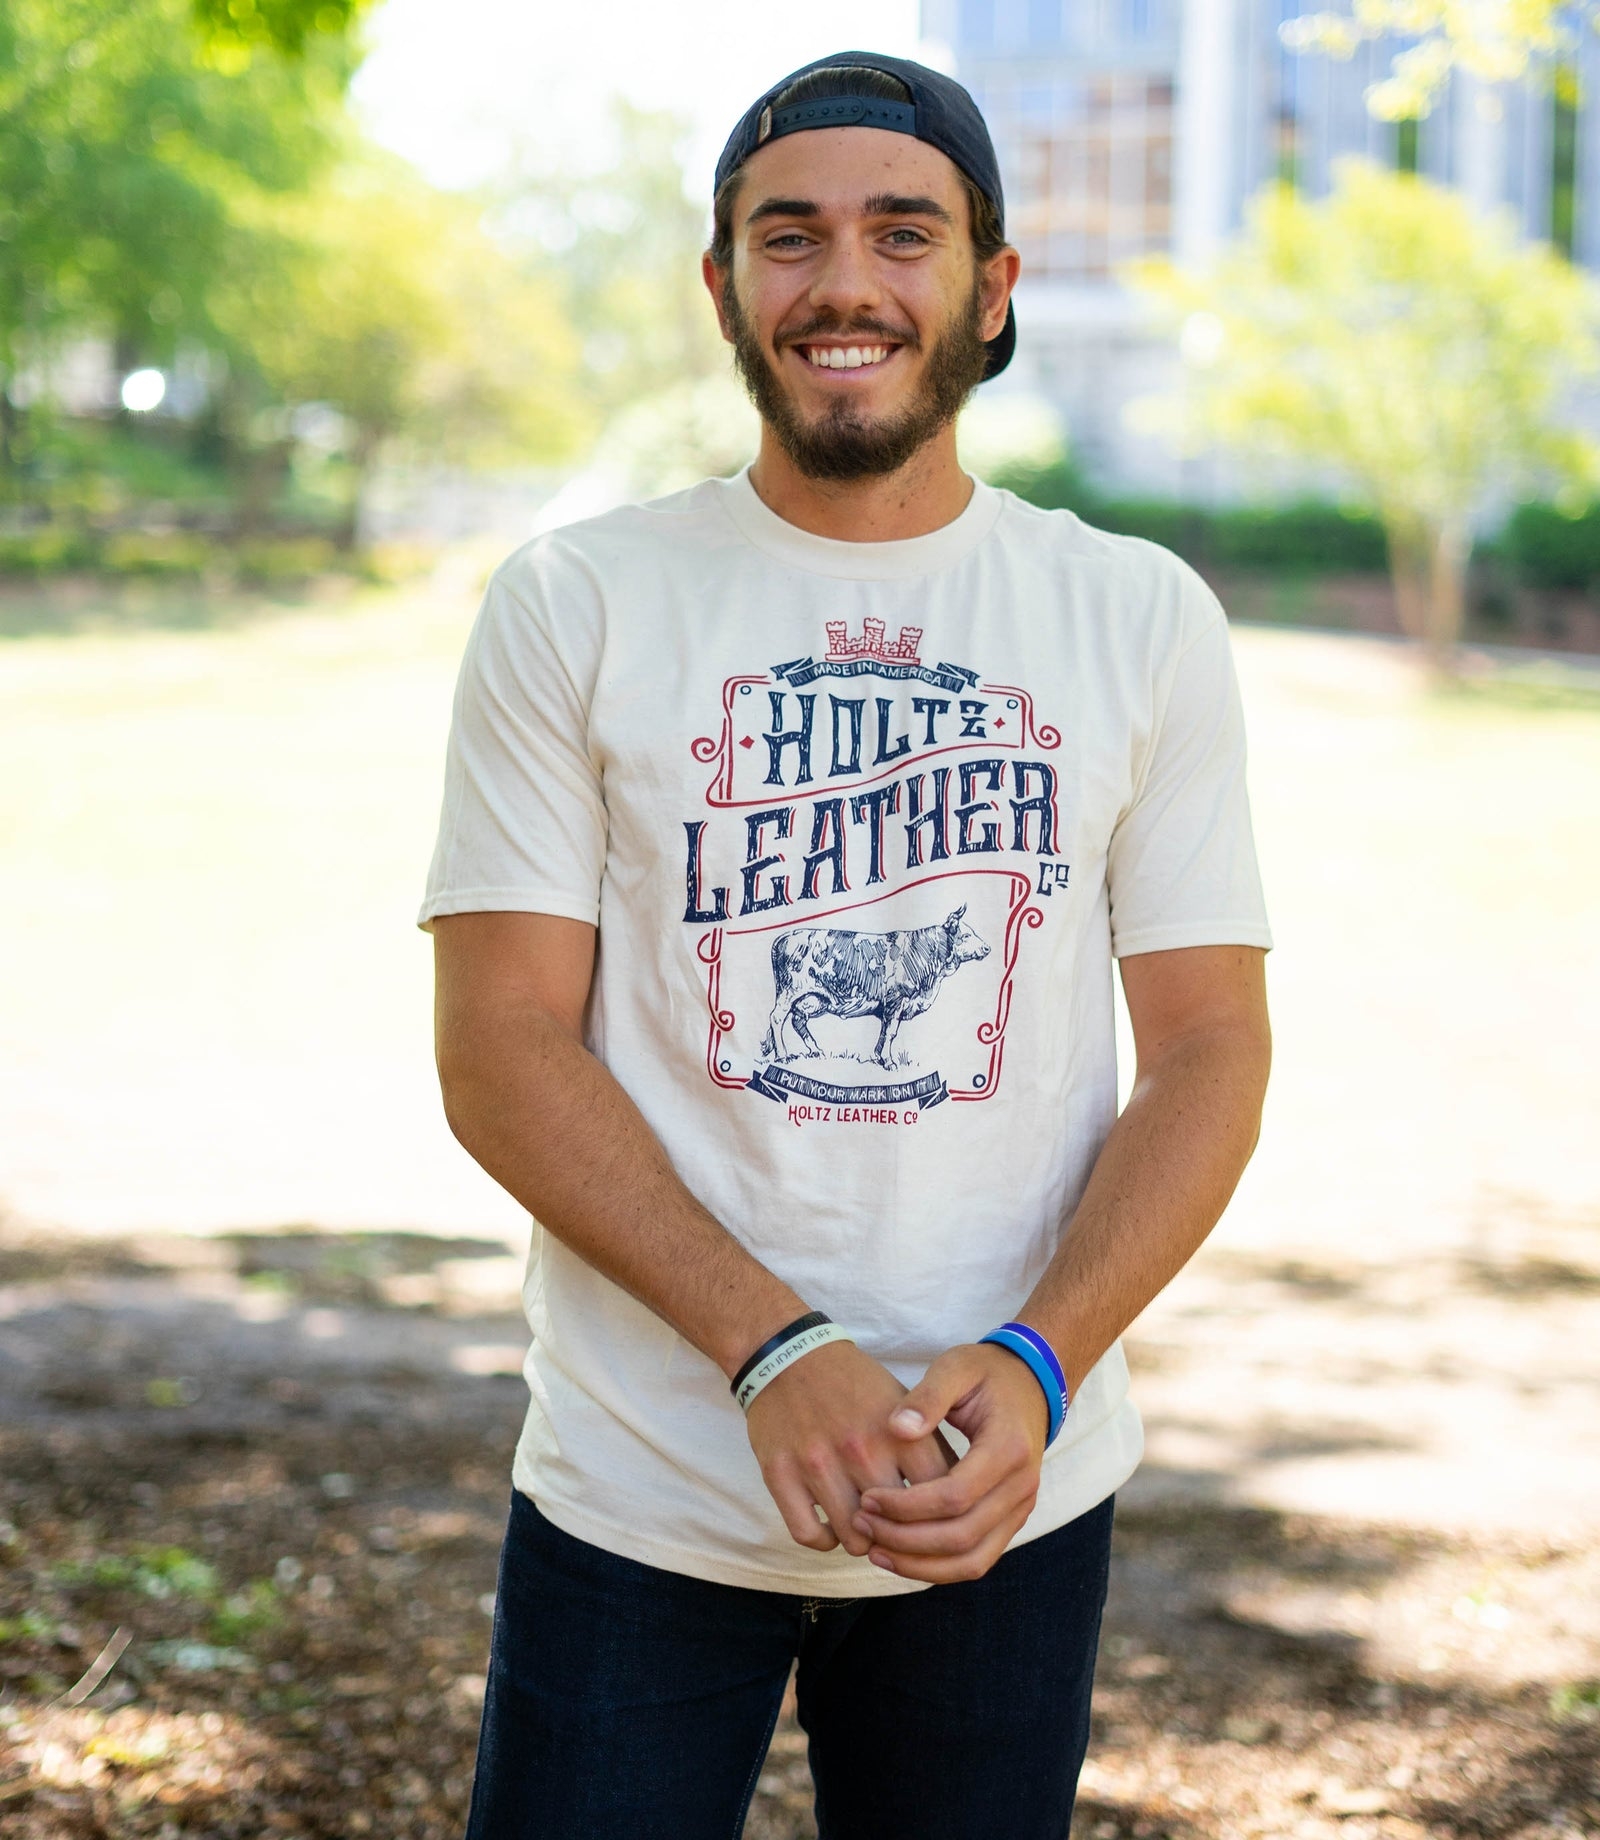 Hats & Apparel - Holtz Leather Co